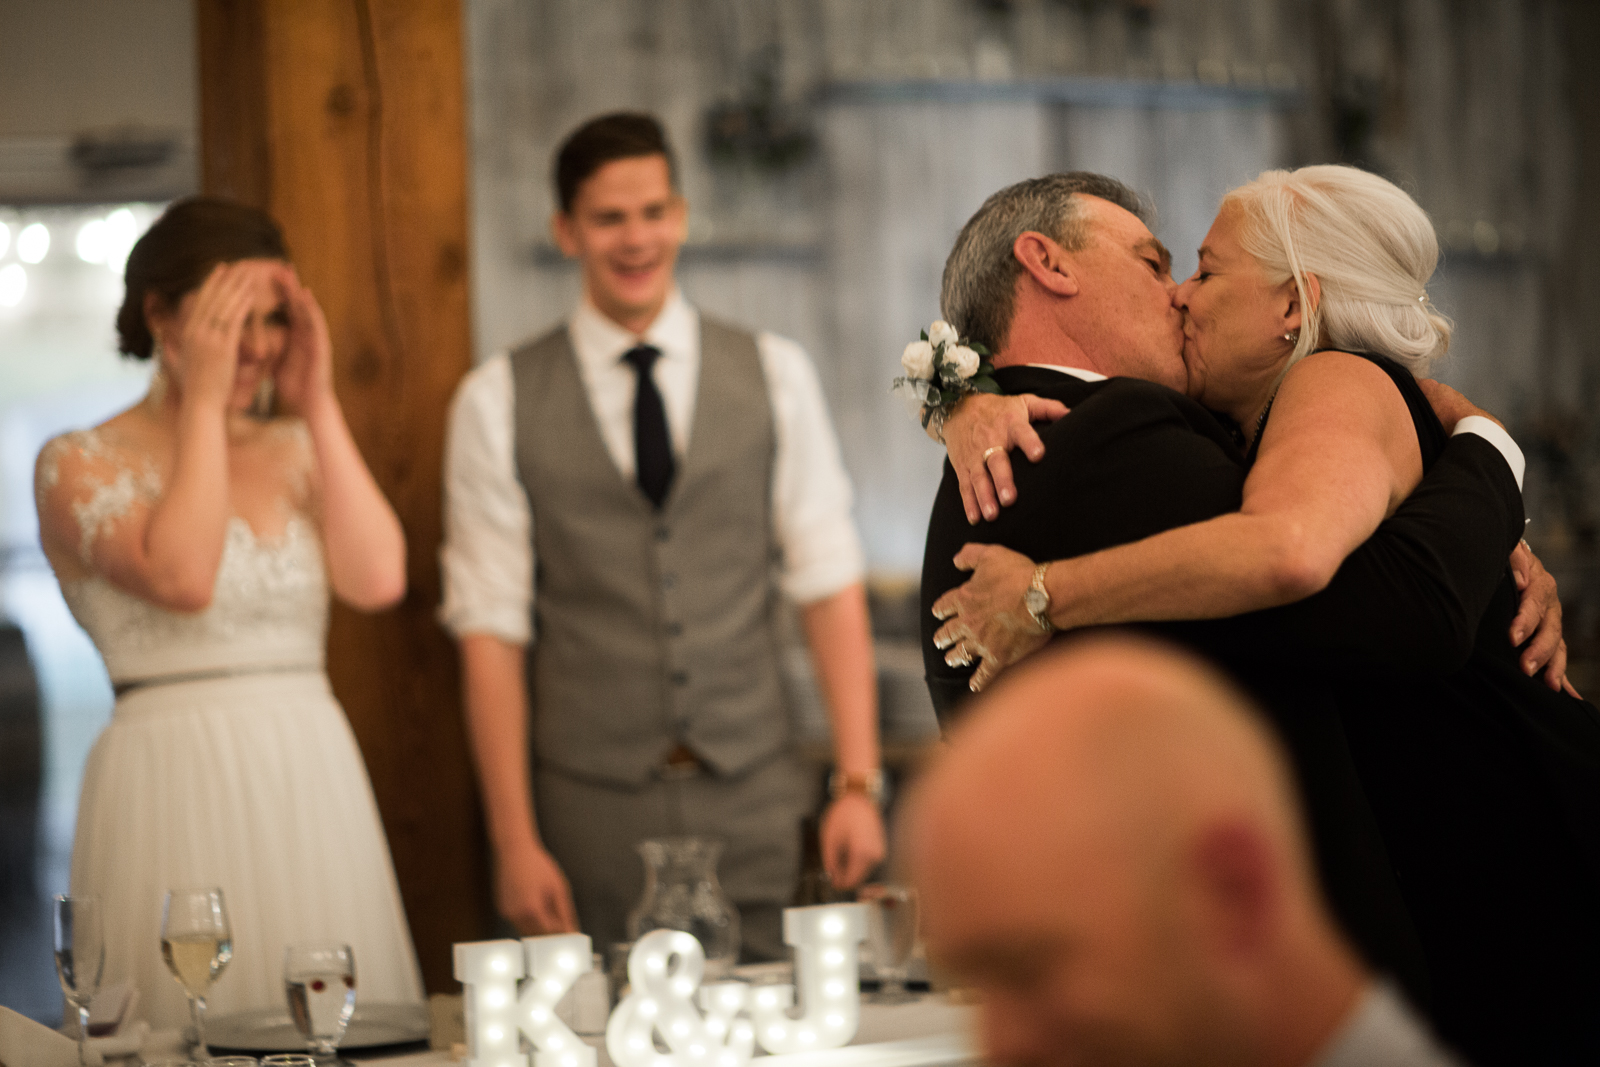 110Willow_and_Wolf_Photography_Katie_and_James_Waterton_Wedding_Blog101-Willow_and_Wolf_Photography_Katie_and_James_Waterton_Wedding_Reception_ATP_6440